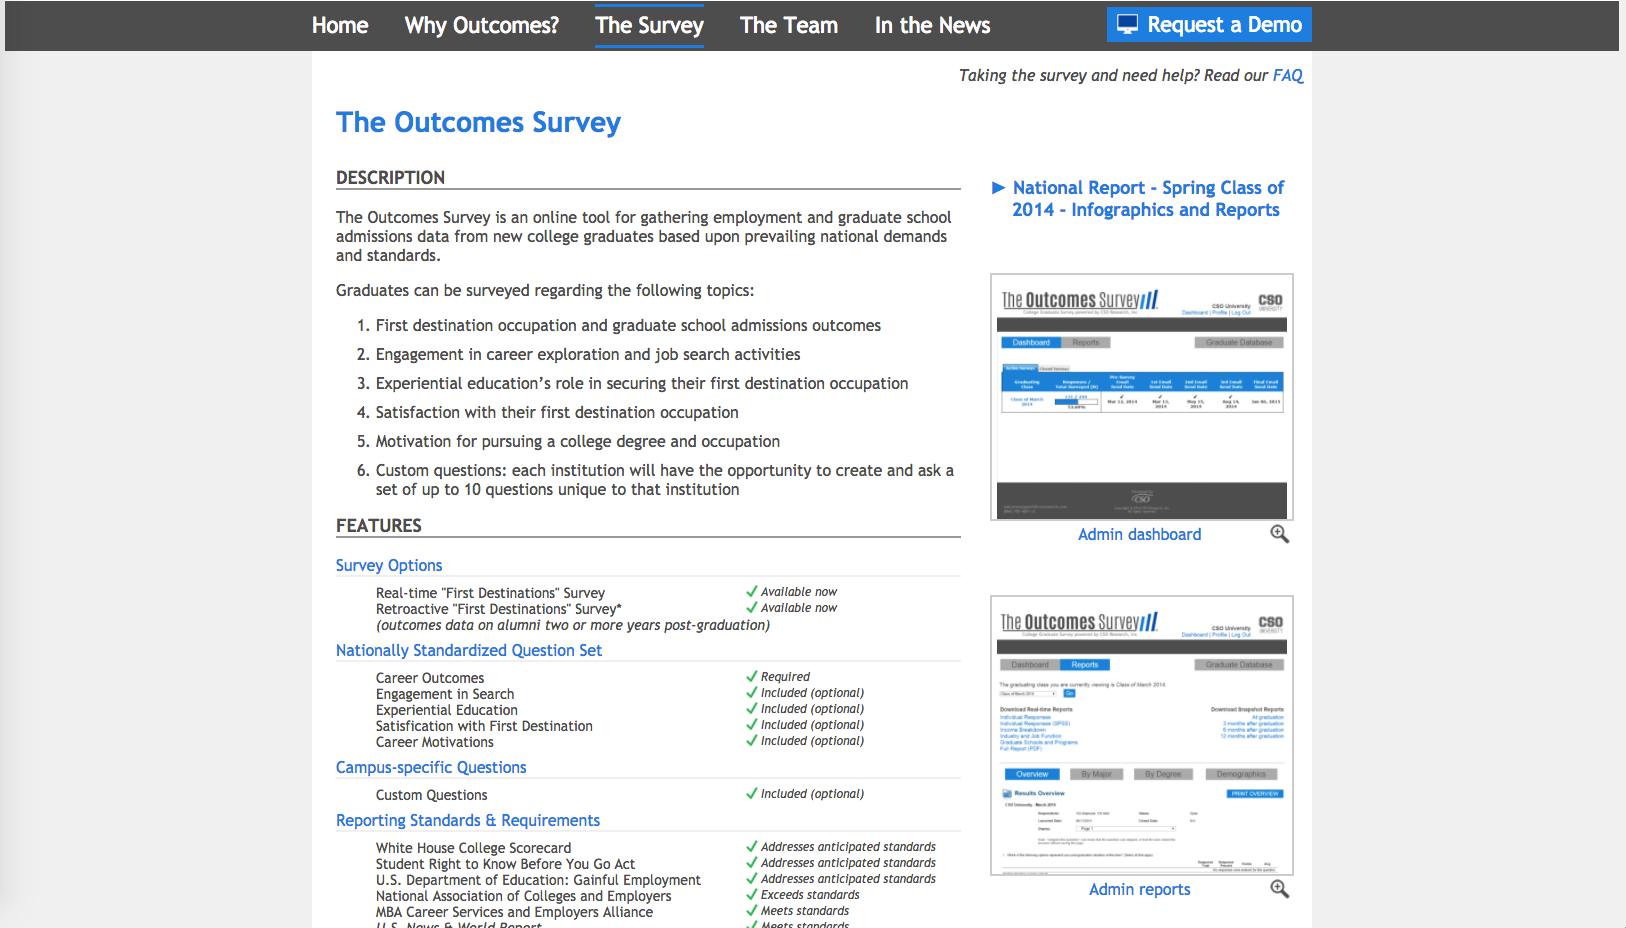 The Outcomes Survey Website